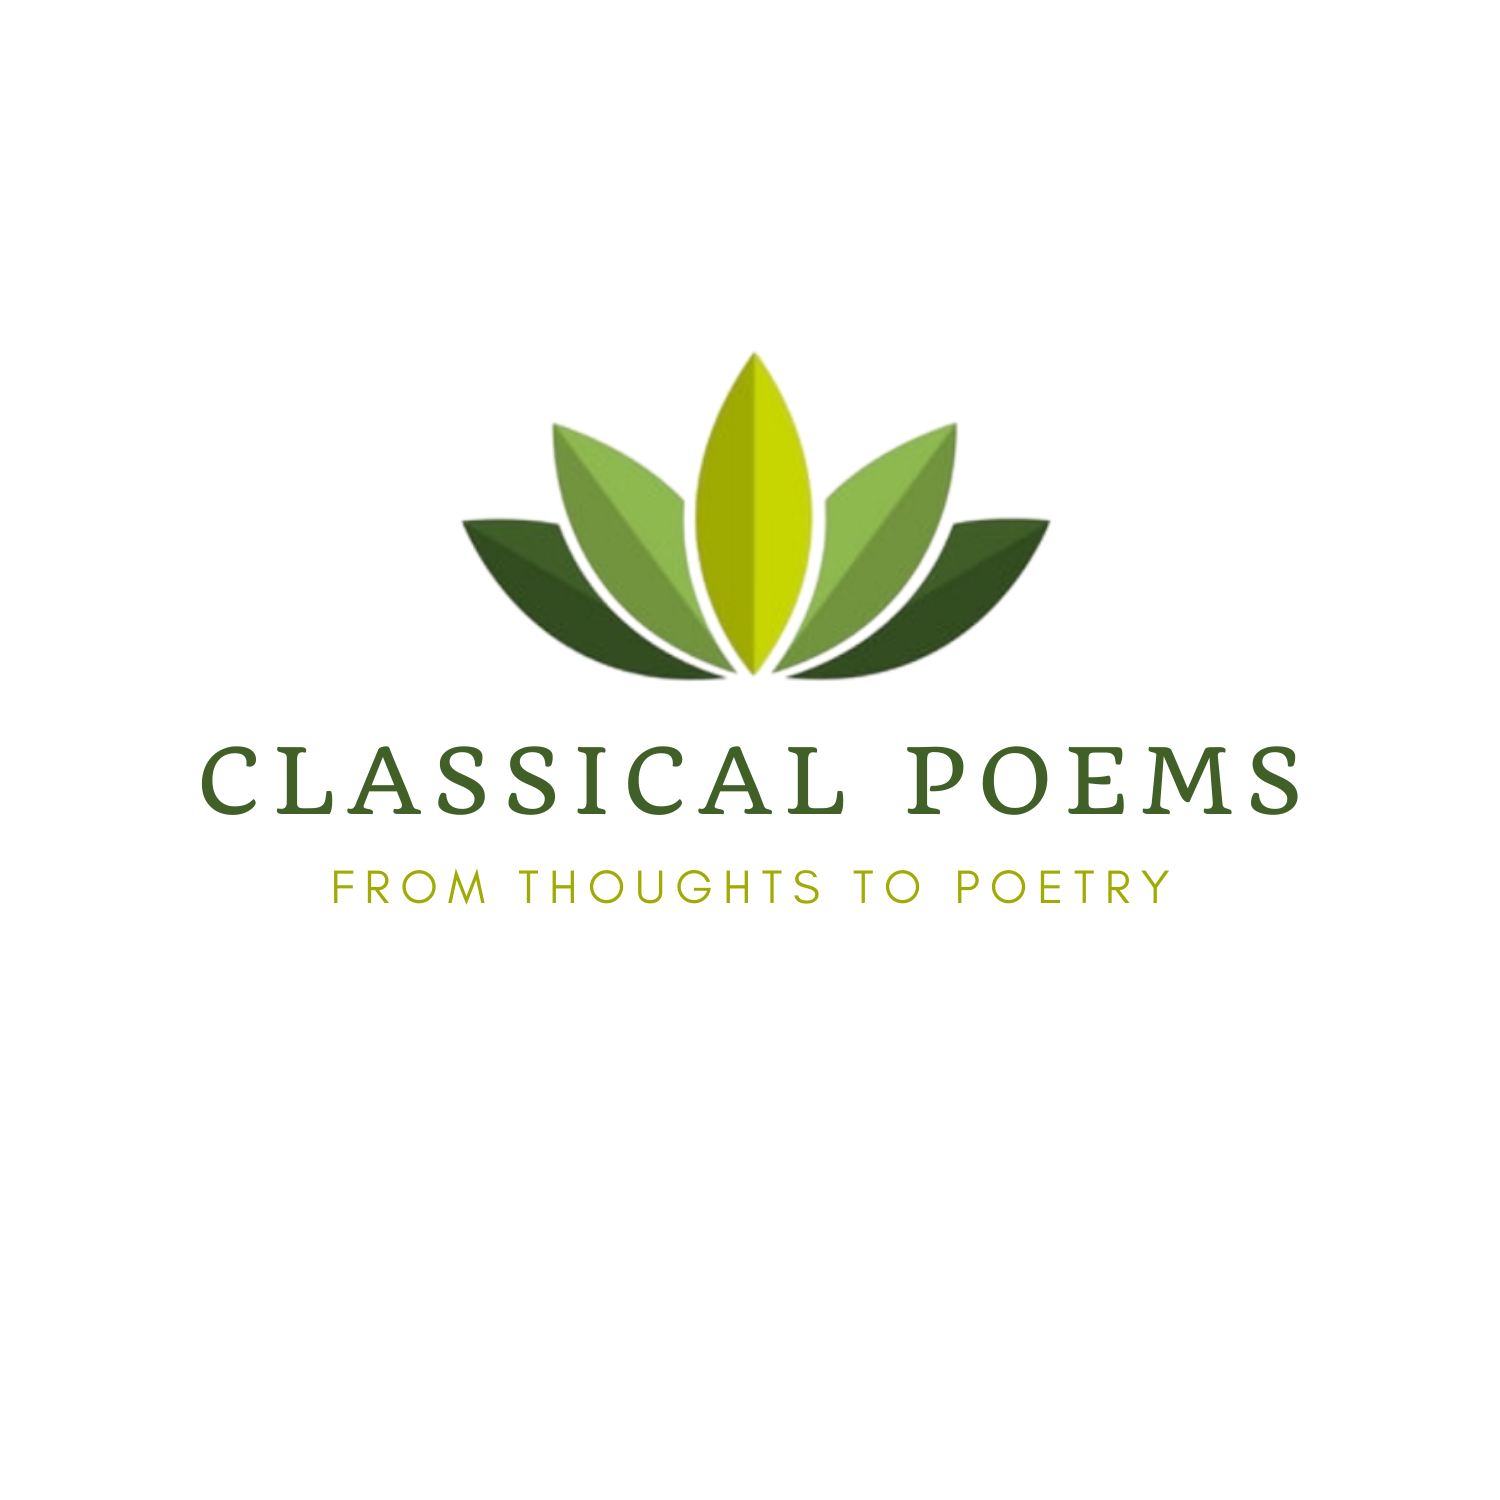 Classical Poems